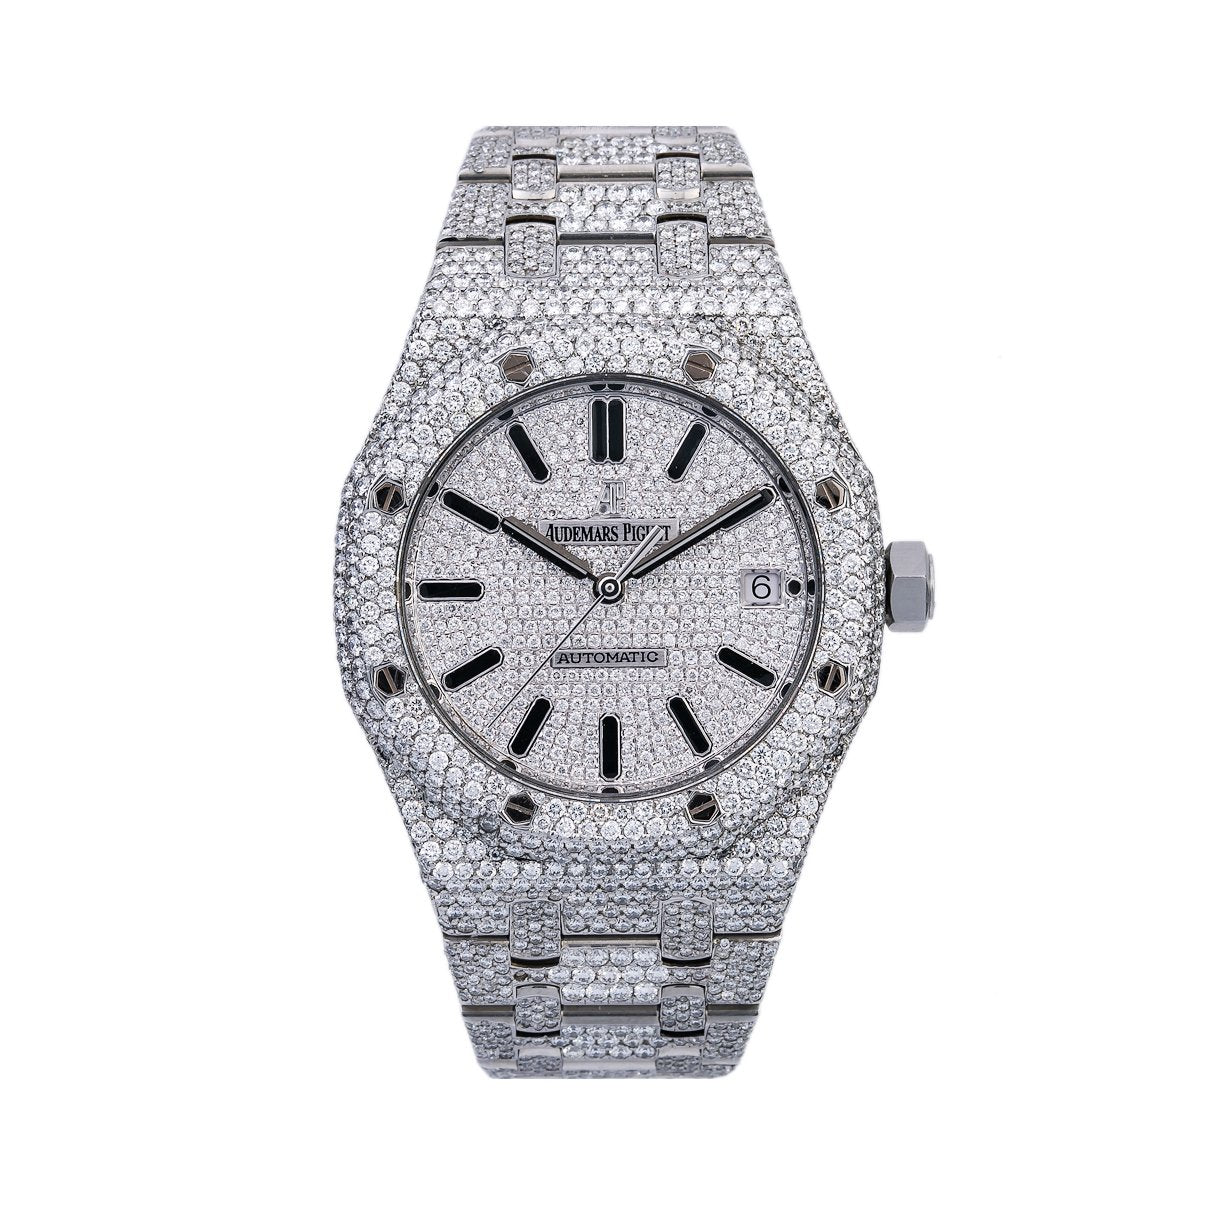 Audemars Piguet Royal Oak Selfwinding 15450ST 37MM Iced Out With  20.75 CT Diamonds